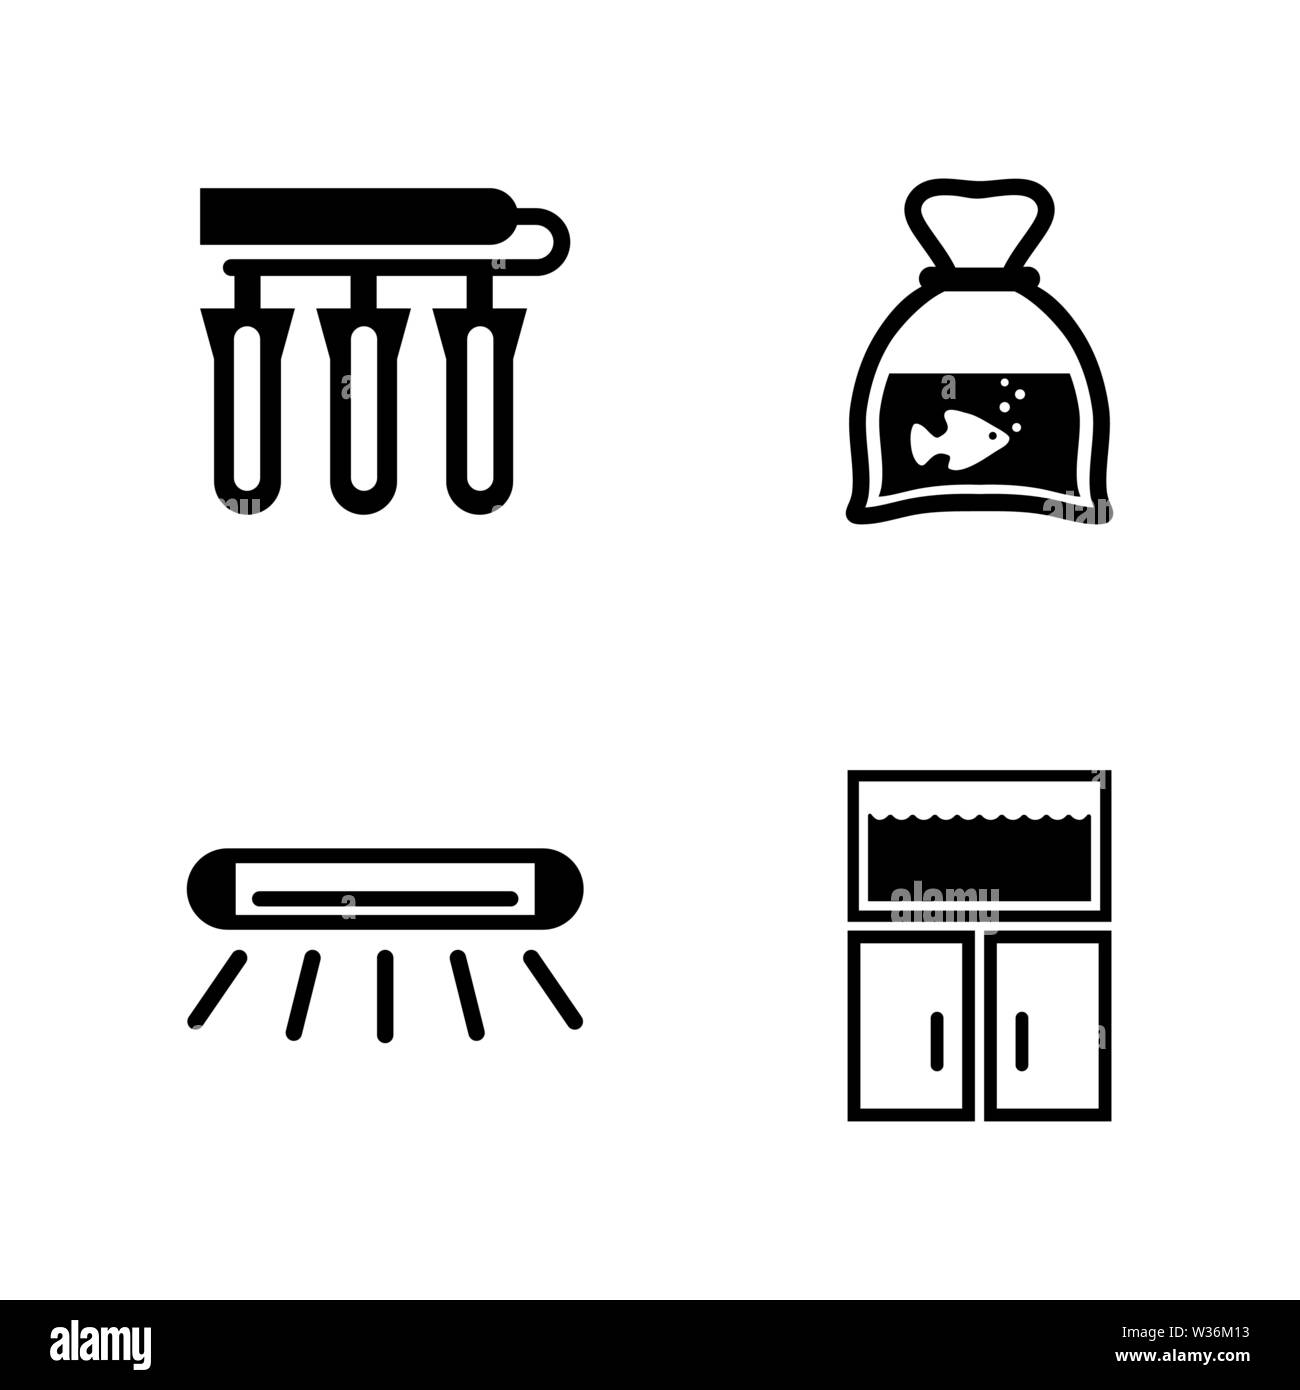 Aquarium accessories. Simple Related Vector Icons Set for Video, Mobile Apps, Web Sites, Print Projects and Your Design. Black Flat Illustration on Wh - Stock Image